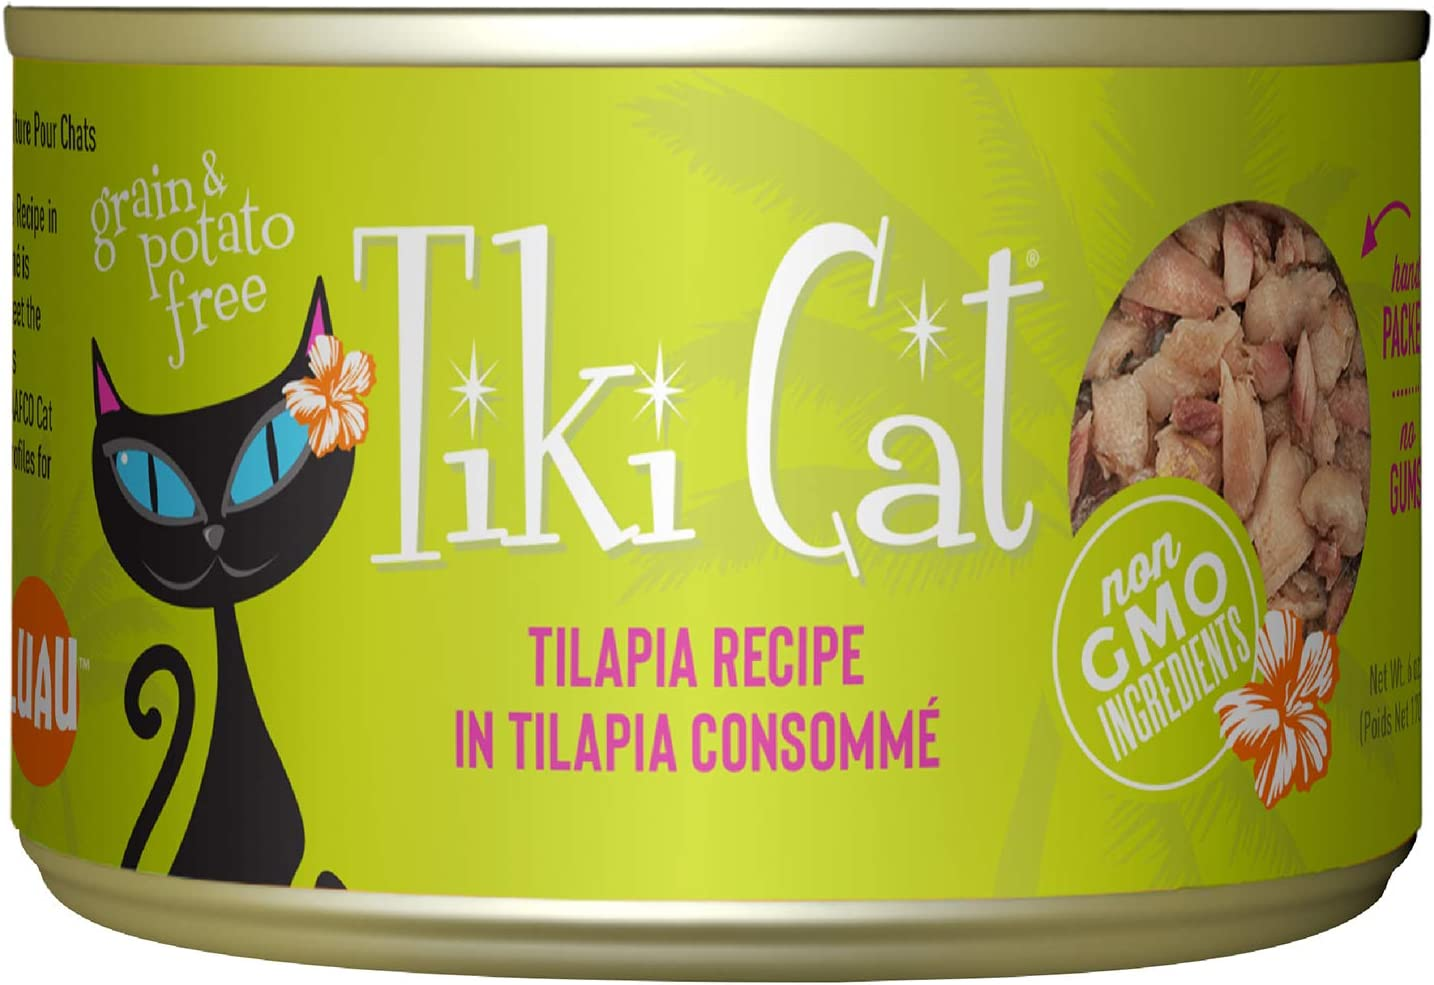 Tiki Cat Luau Grain-Free, Low-Carbohydrate Wet Food with Poultry or Fish in Consomme for Adult Cats & Kittens, 6oz, 8pk, Tilapia